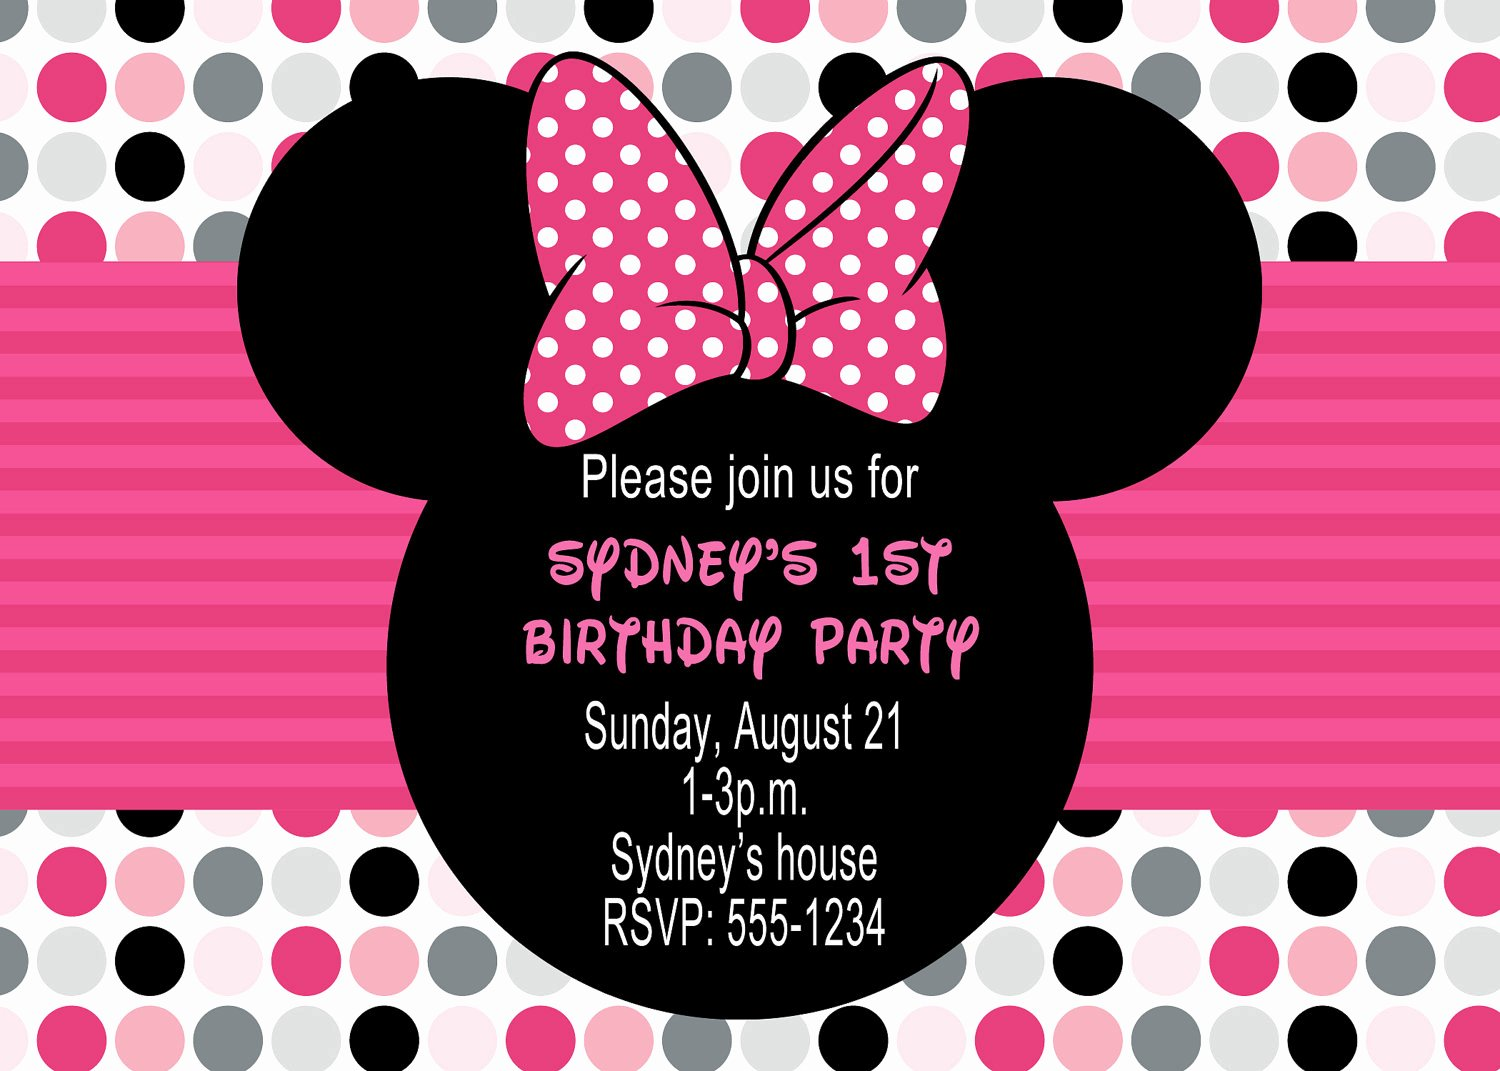 Minnie Mouse Birthday Party Invitations Luxury Minnie Mouse Birthday Party Invitations